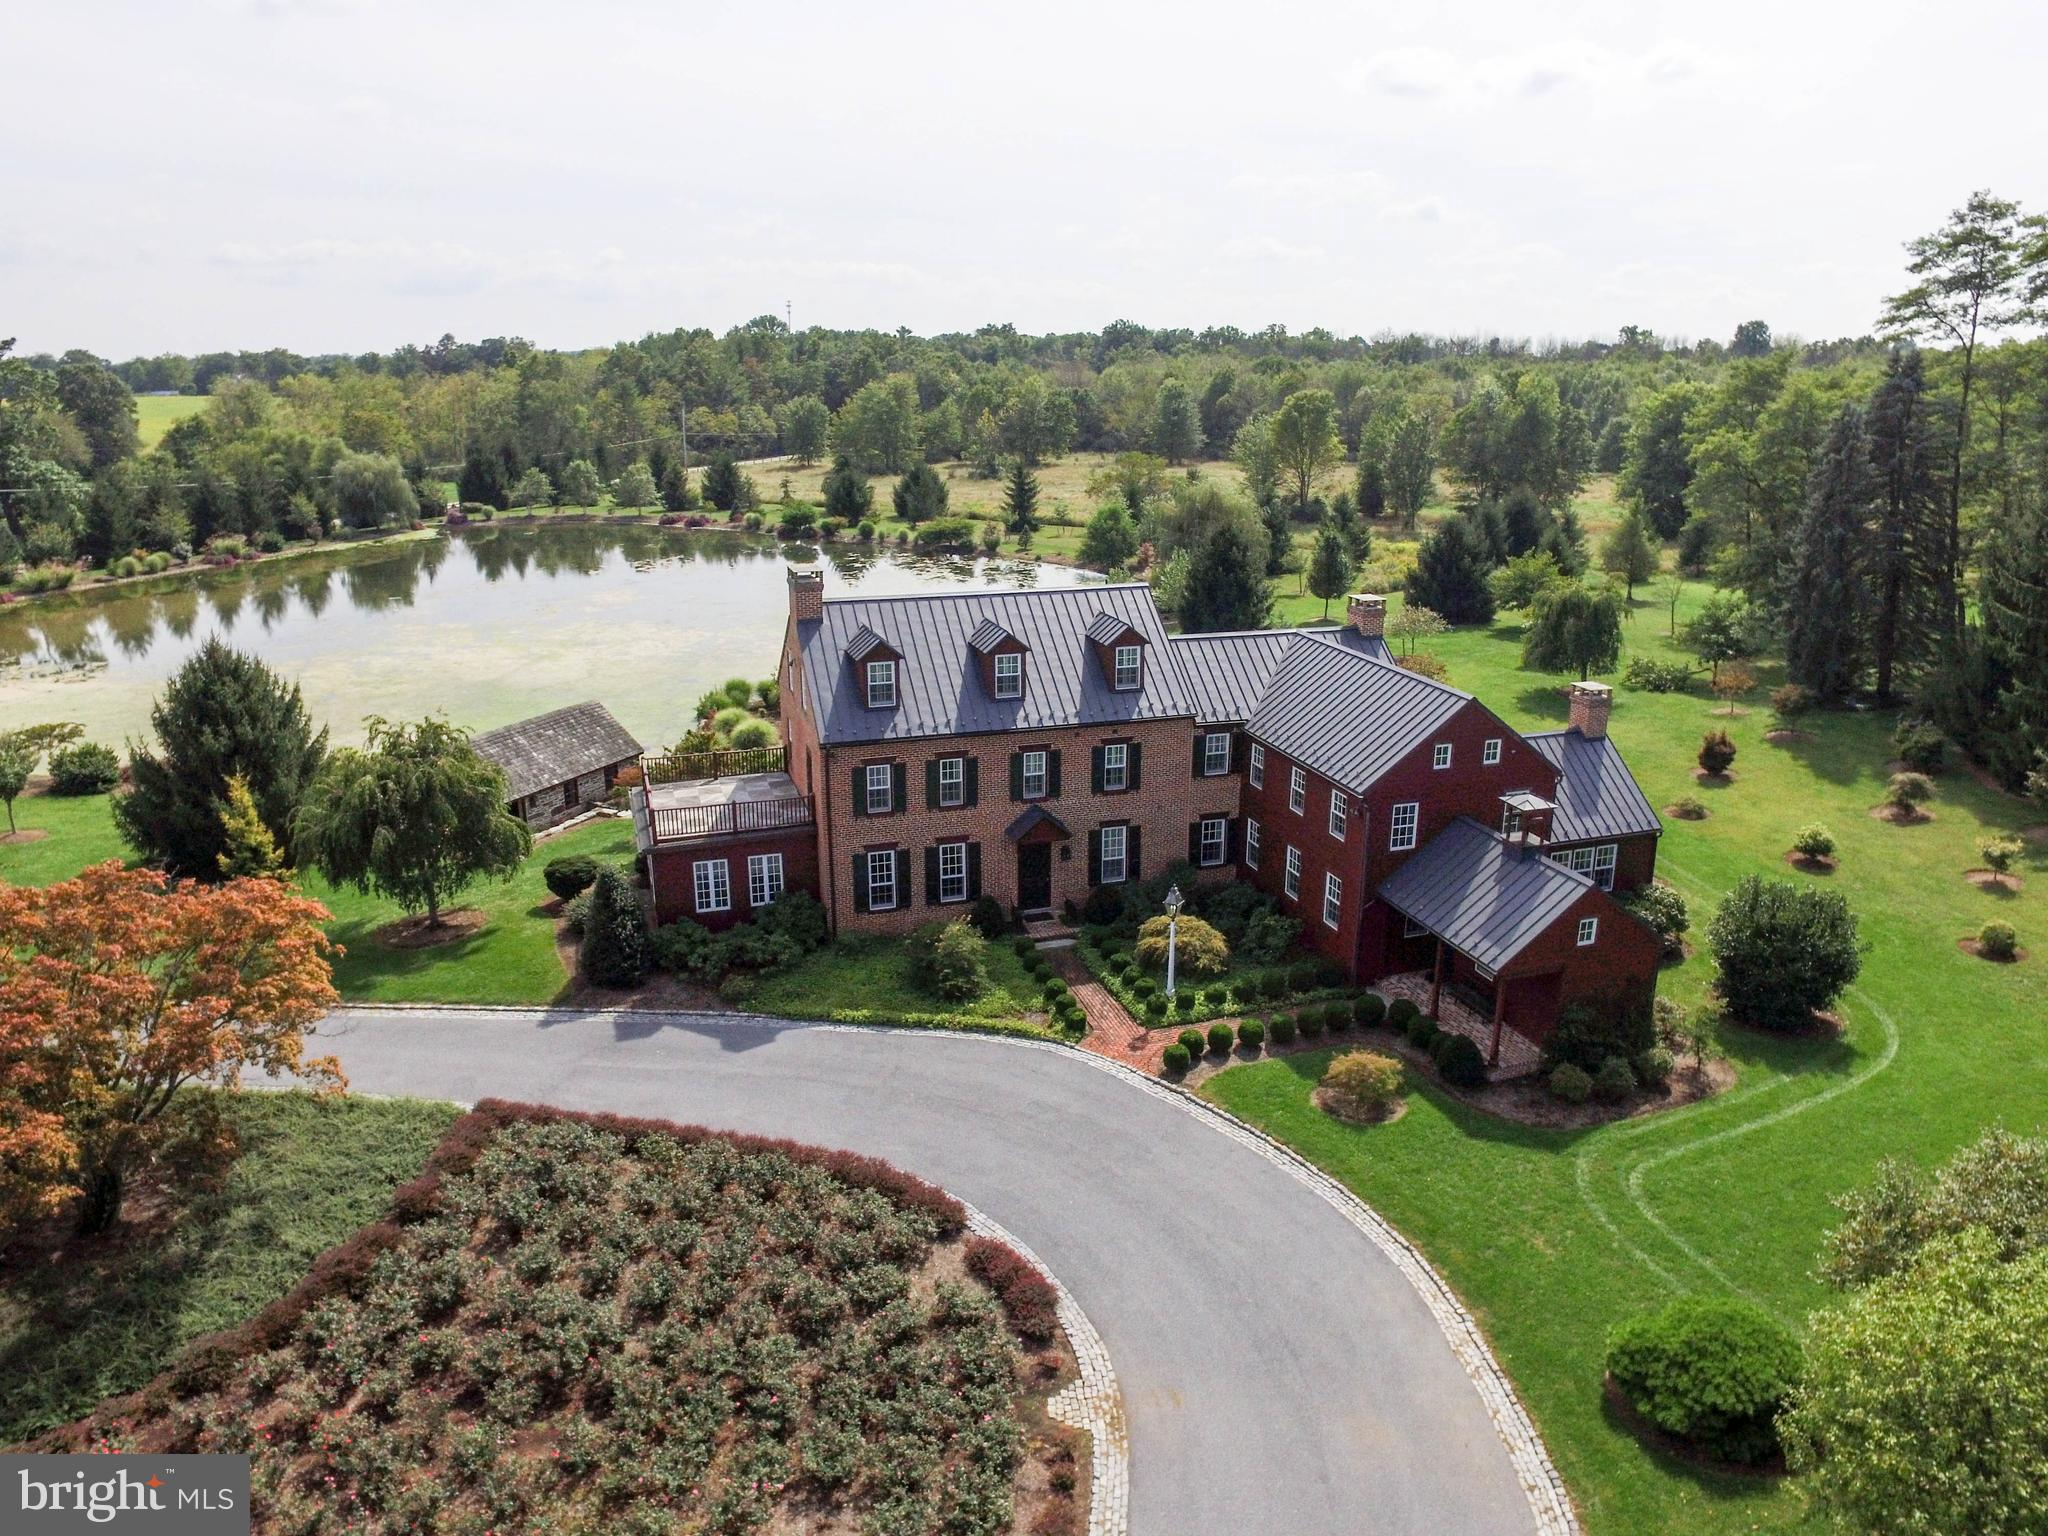 Aerial View of Home & Pond